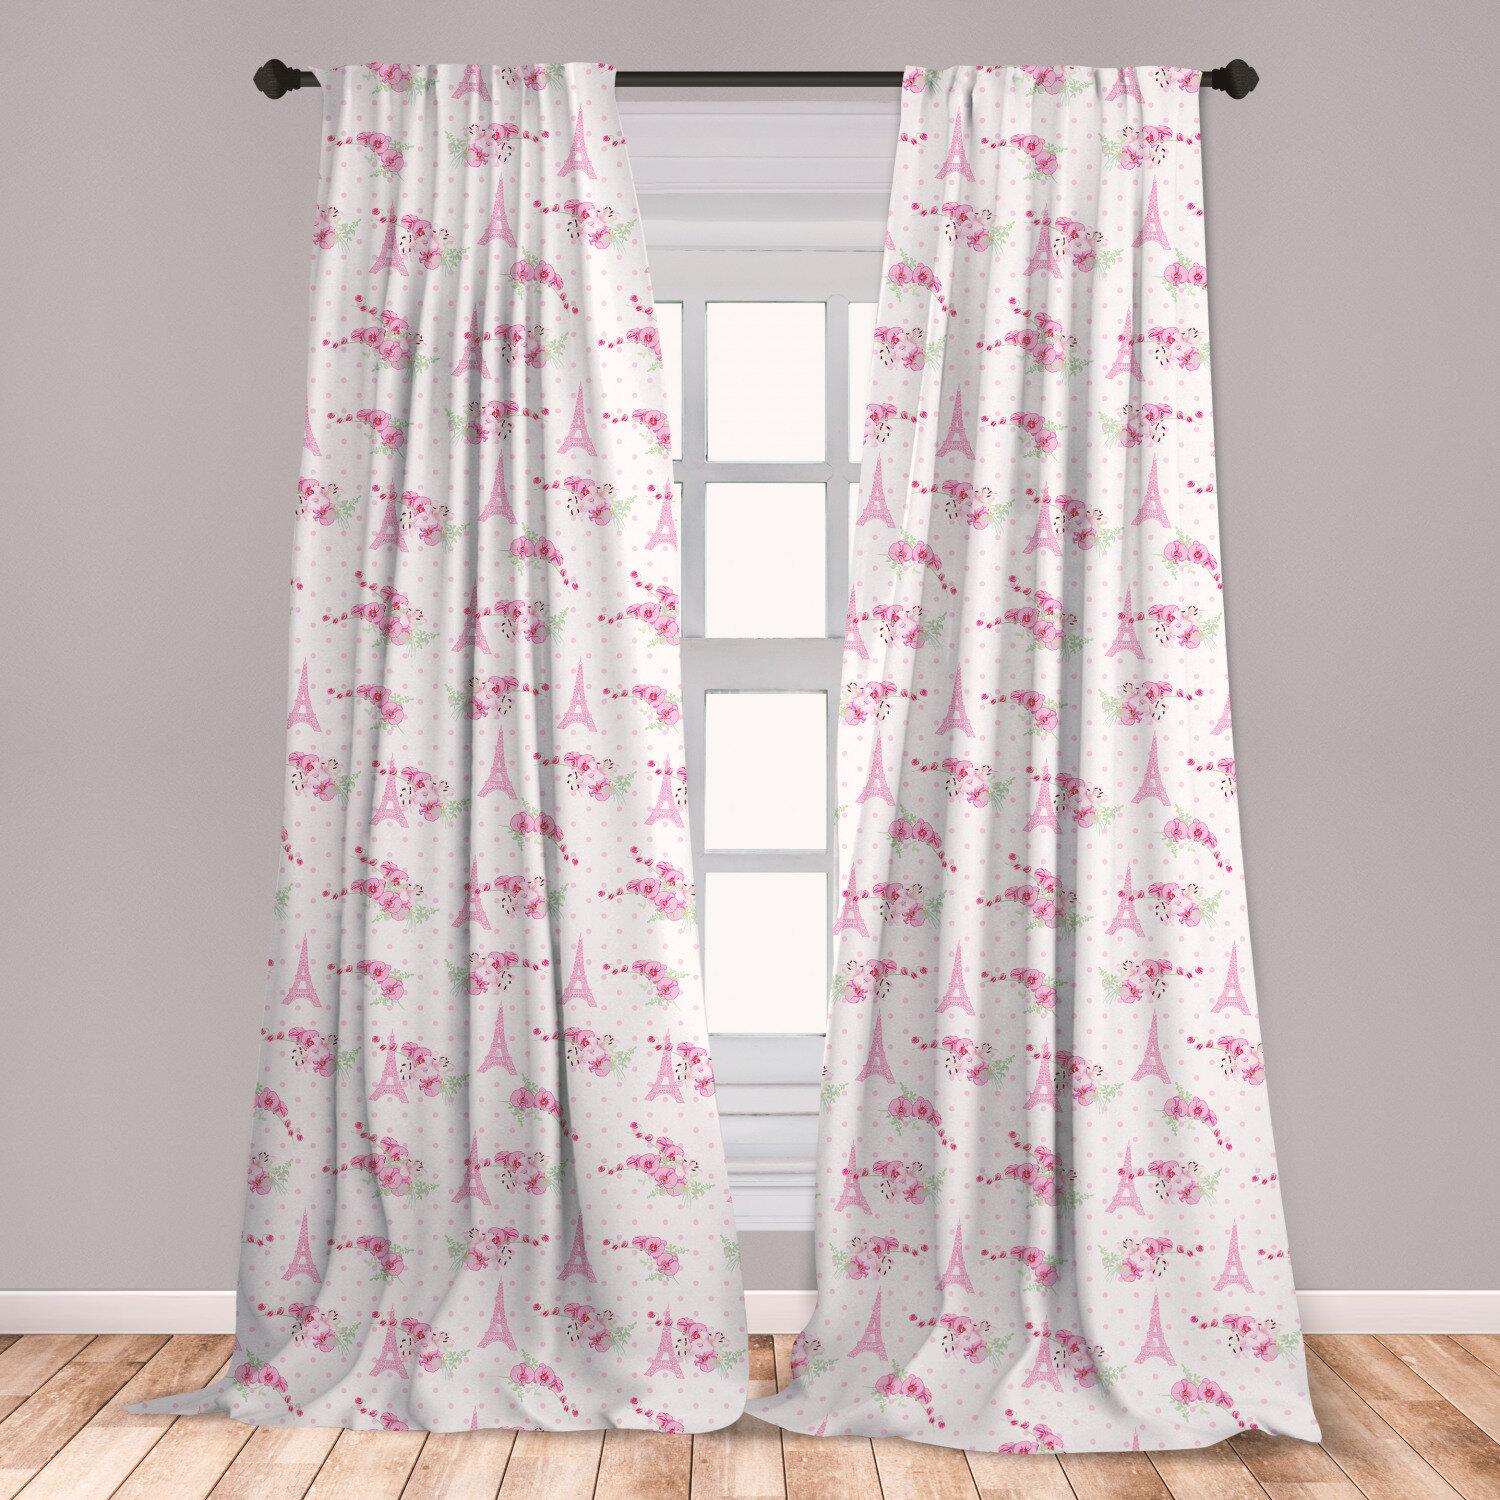 East Urban Home Ambesonne Eiffel Curtains Spring Inspiration Pink Flowers Bouquet And Paris Landmark On Polka Dots Window Treatments 2 Panel Set For Living Room Bedroom Decor 56 X 63 Pale Pink